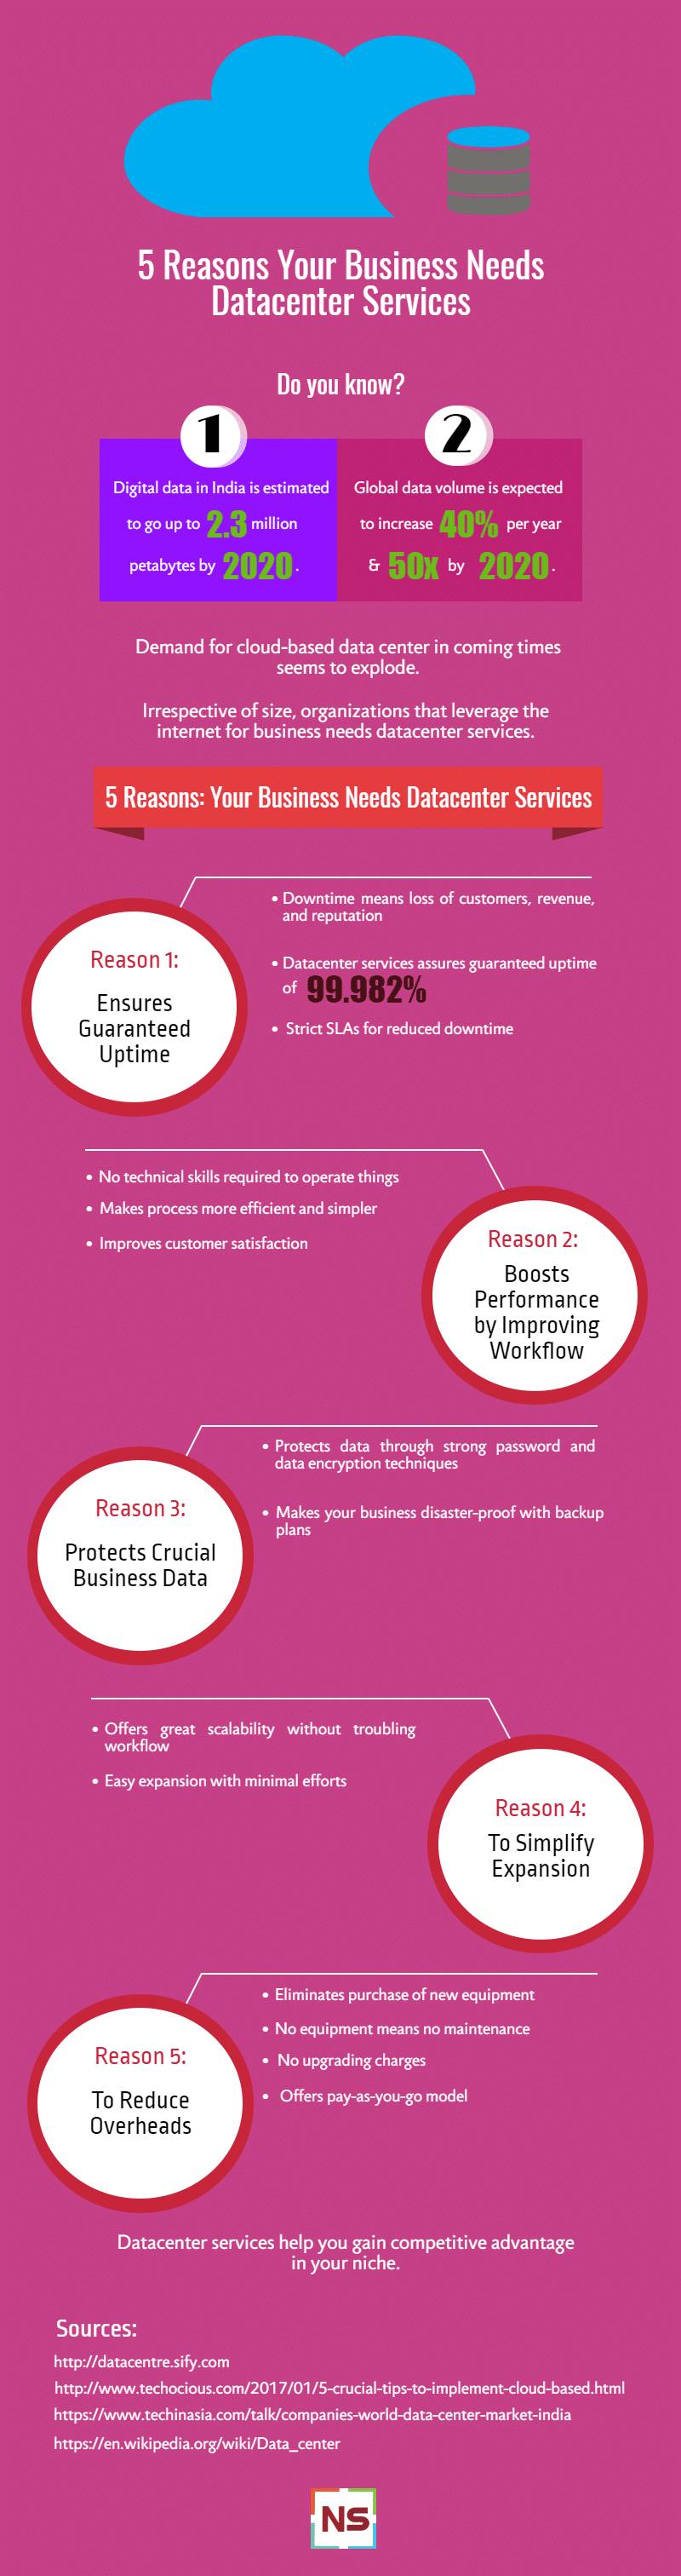 Datacenter Services Infographic